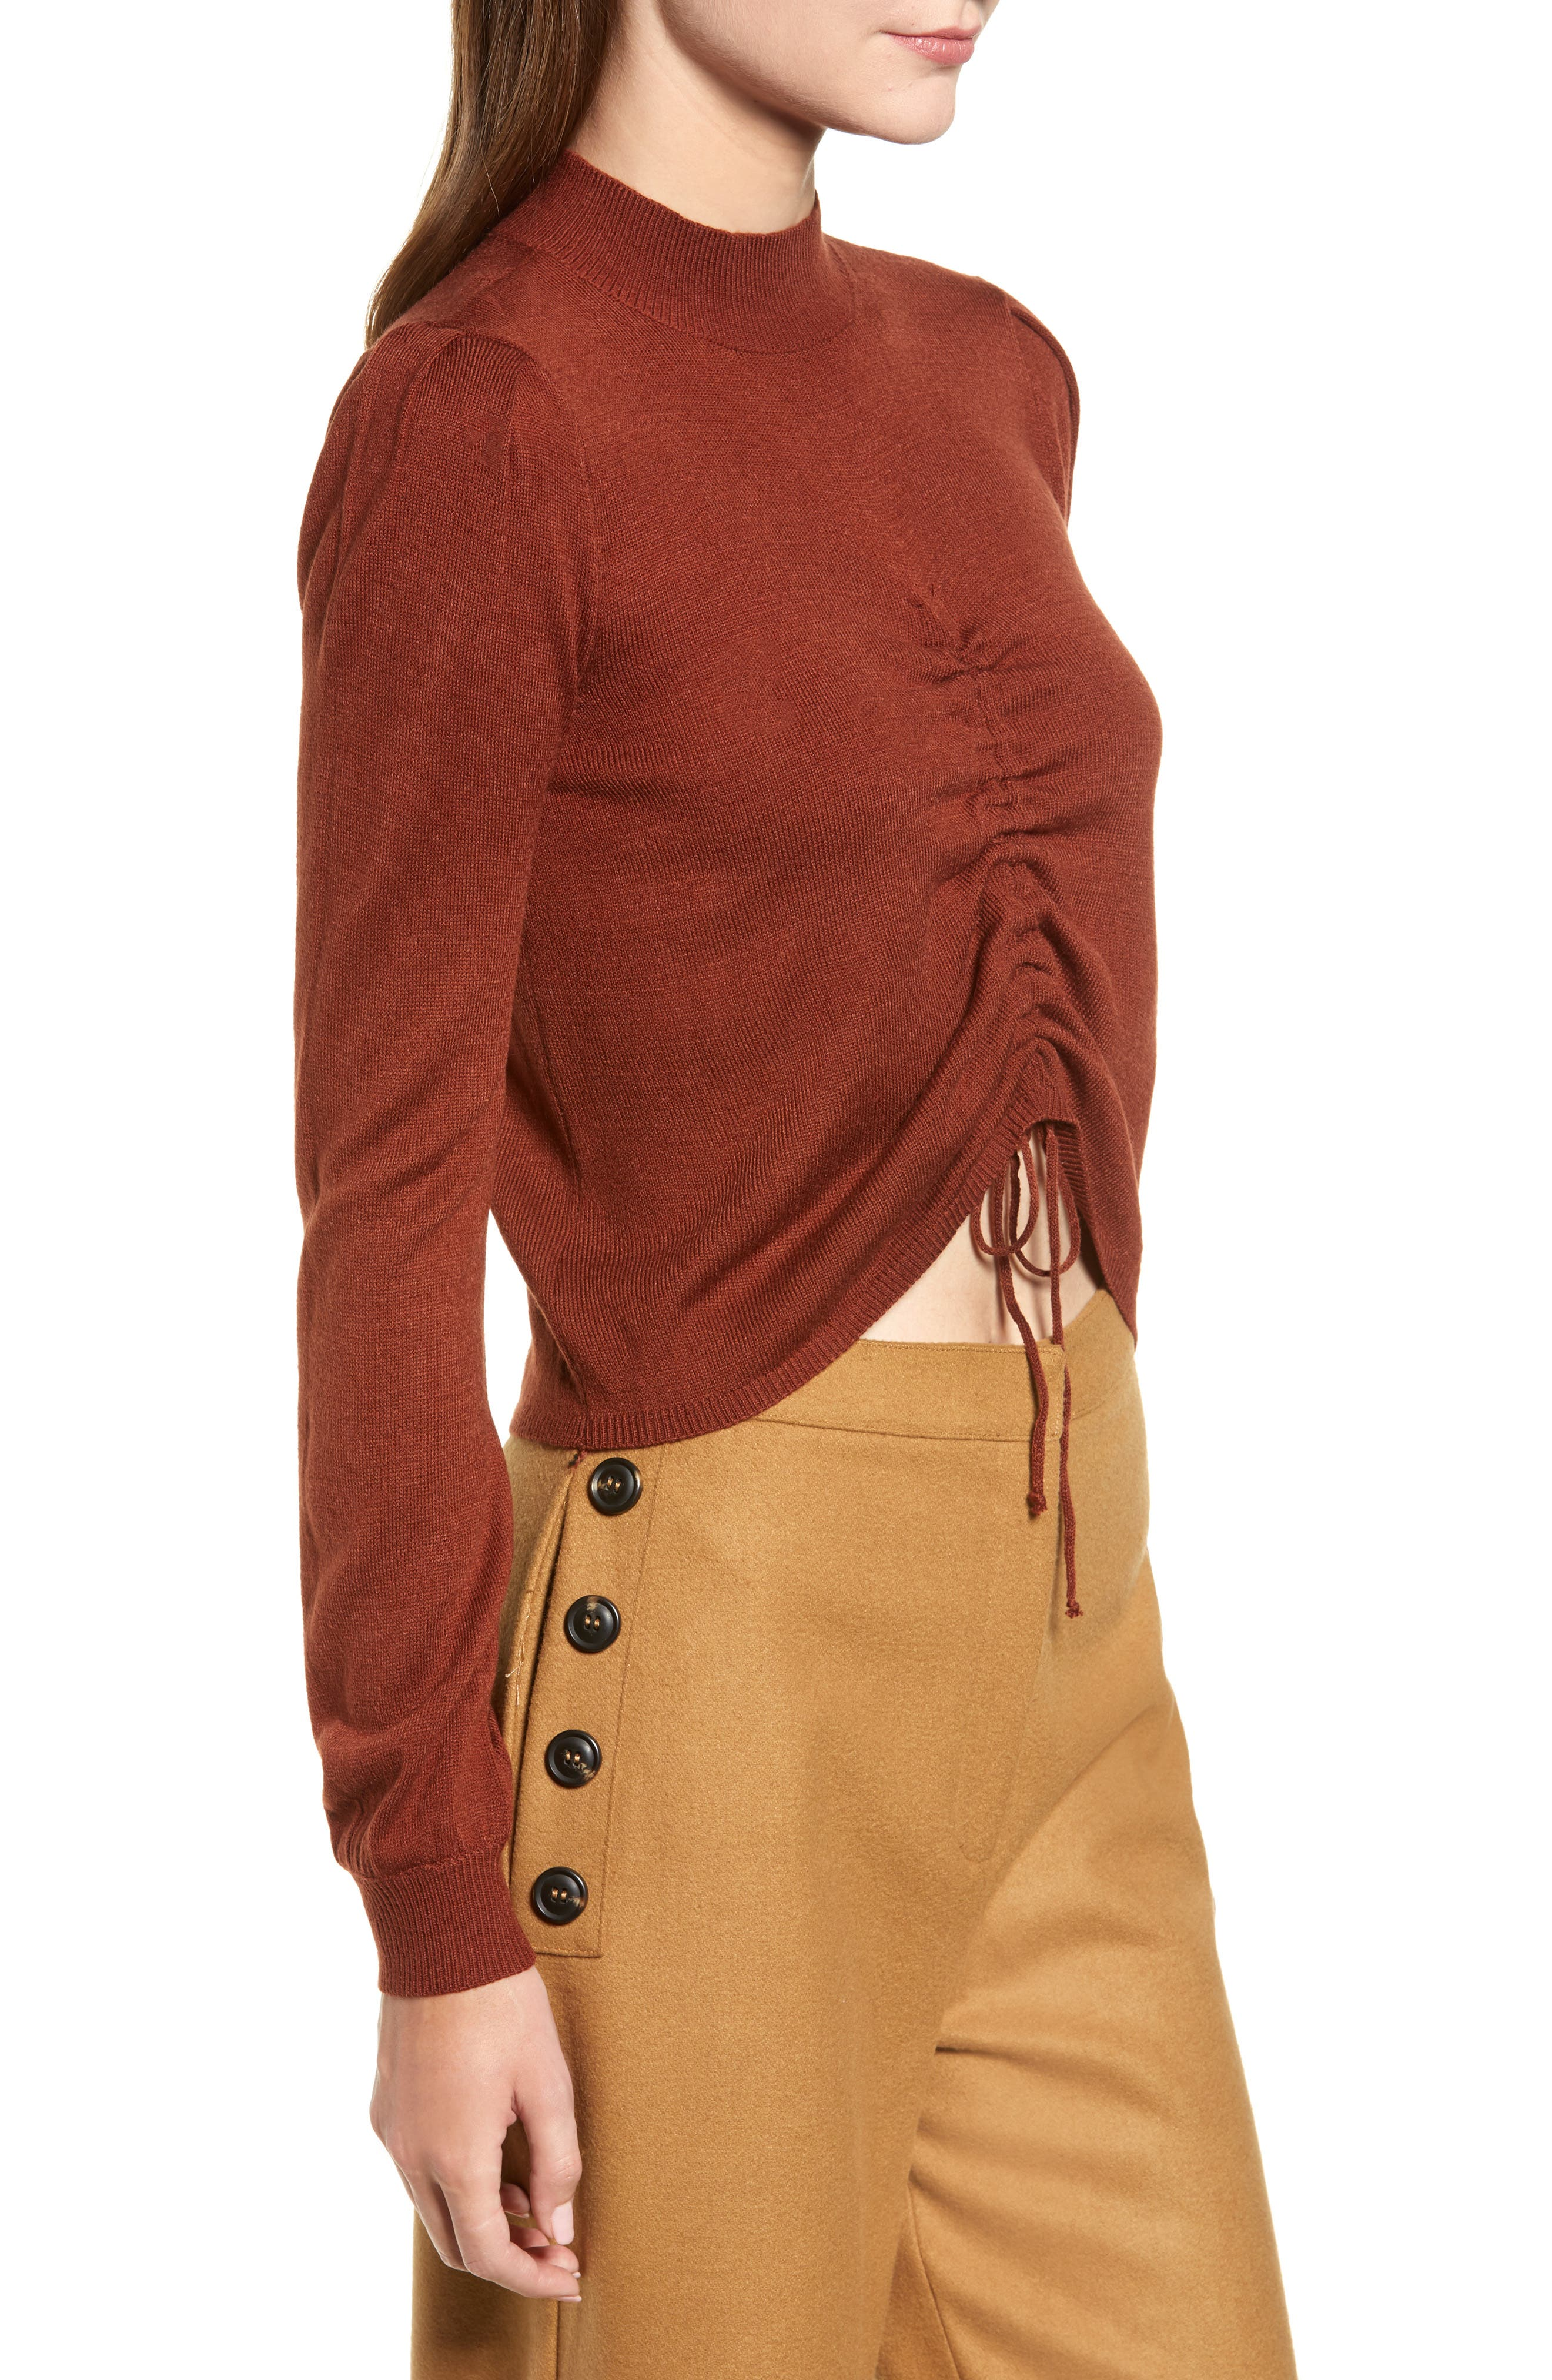 Chriselle Lim Madison Ruched Sweater,                             Alternate thumbnail 4, color,                             RUST